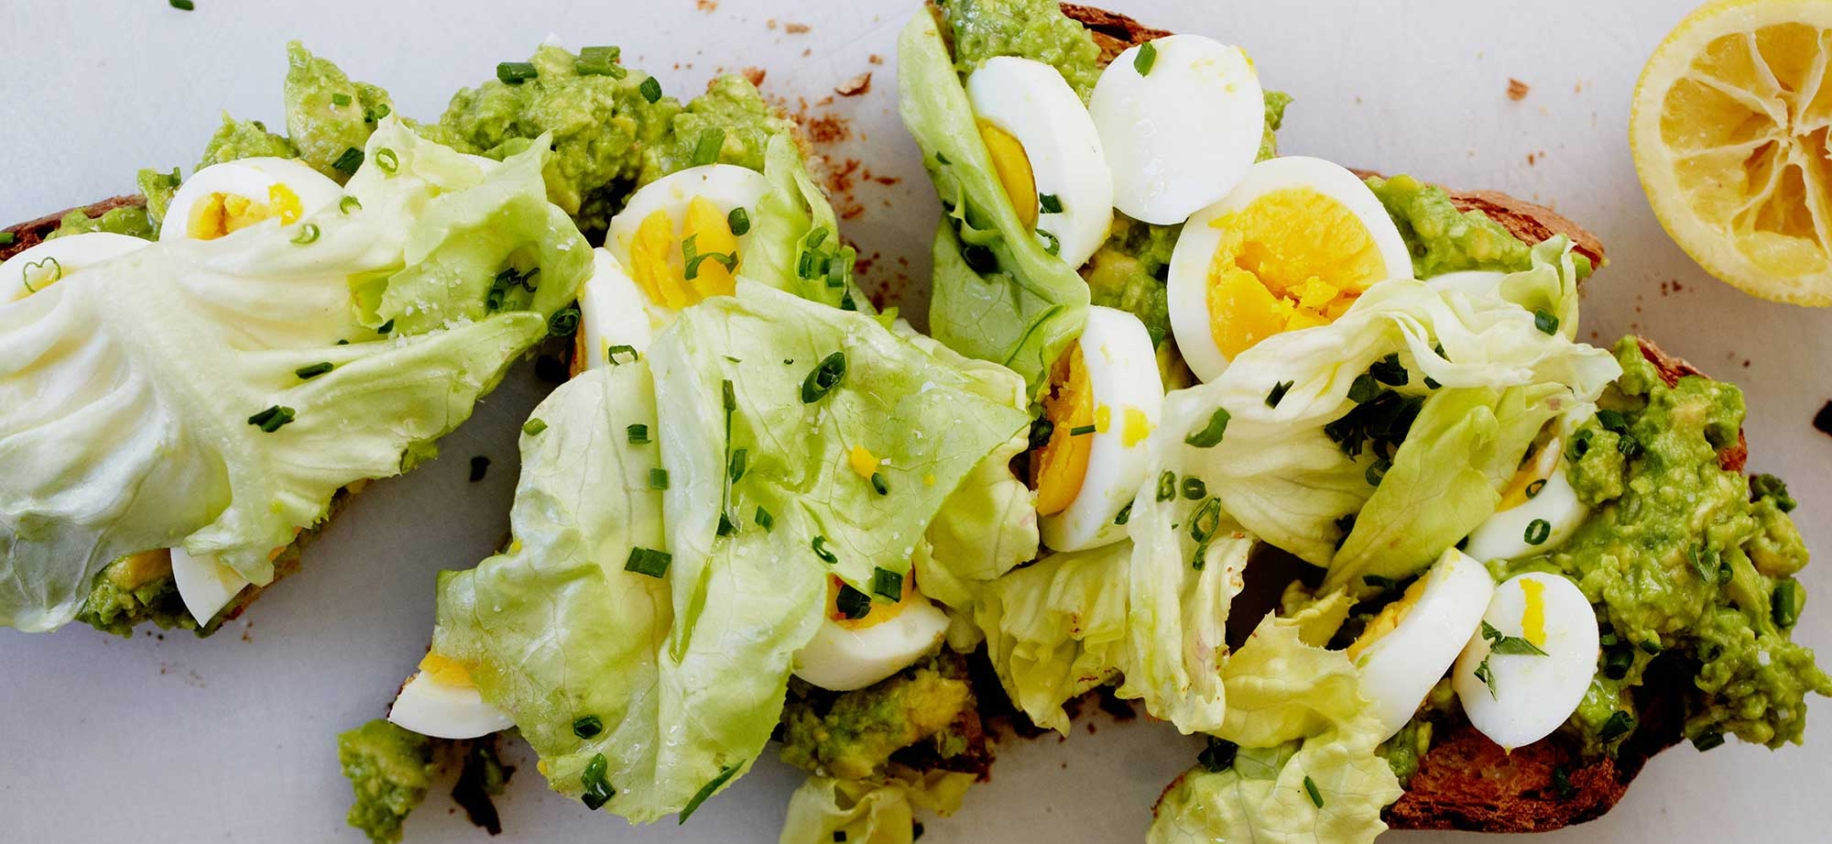 'huckleberry-cafe-avocado-toast' from the web at 'http://www.huckleberrycafe.com/wp-content/uploads/2016/11/Huckleberry-Cafe-Avocado-Toast-1832x844_c.jpg'